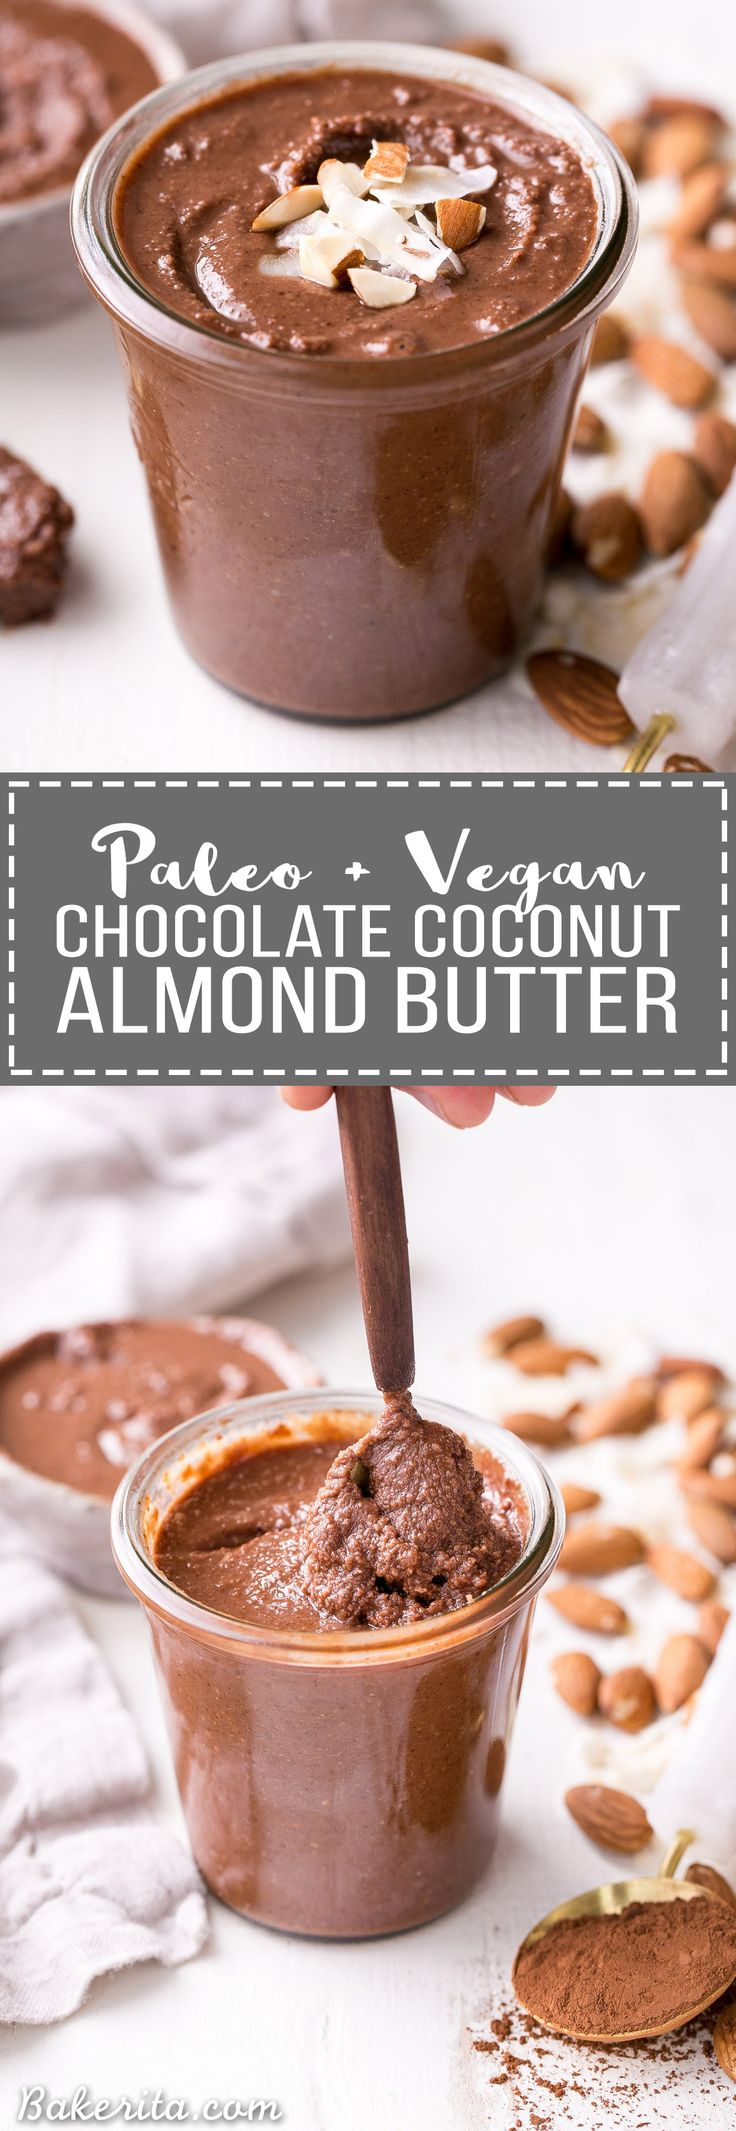 This Dark Chocolate Coconut Almond Butter is a decadent homemade nut butter that will satisfy all your chocolate cravings. This paleo and vegan chocolate spread is perfect with bananas, apples, oatmeal, or with a spoon!